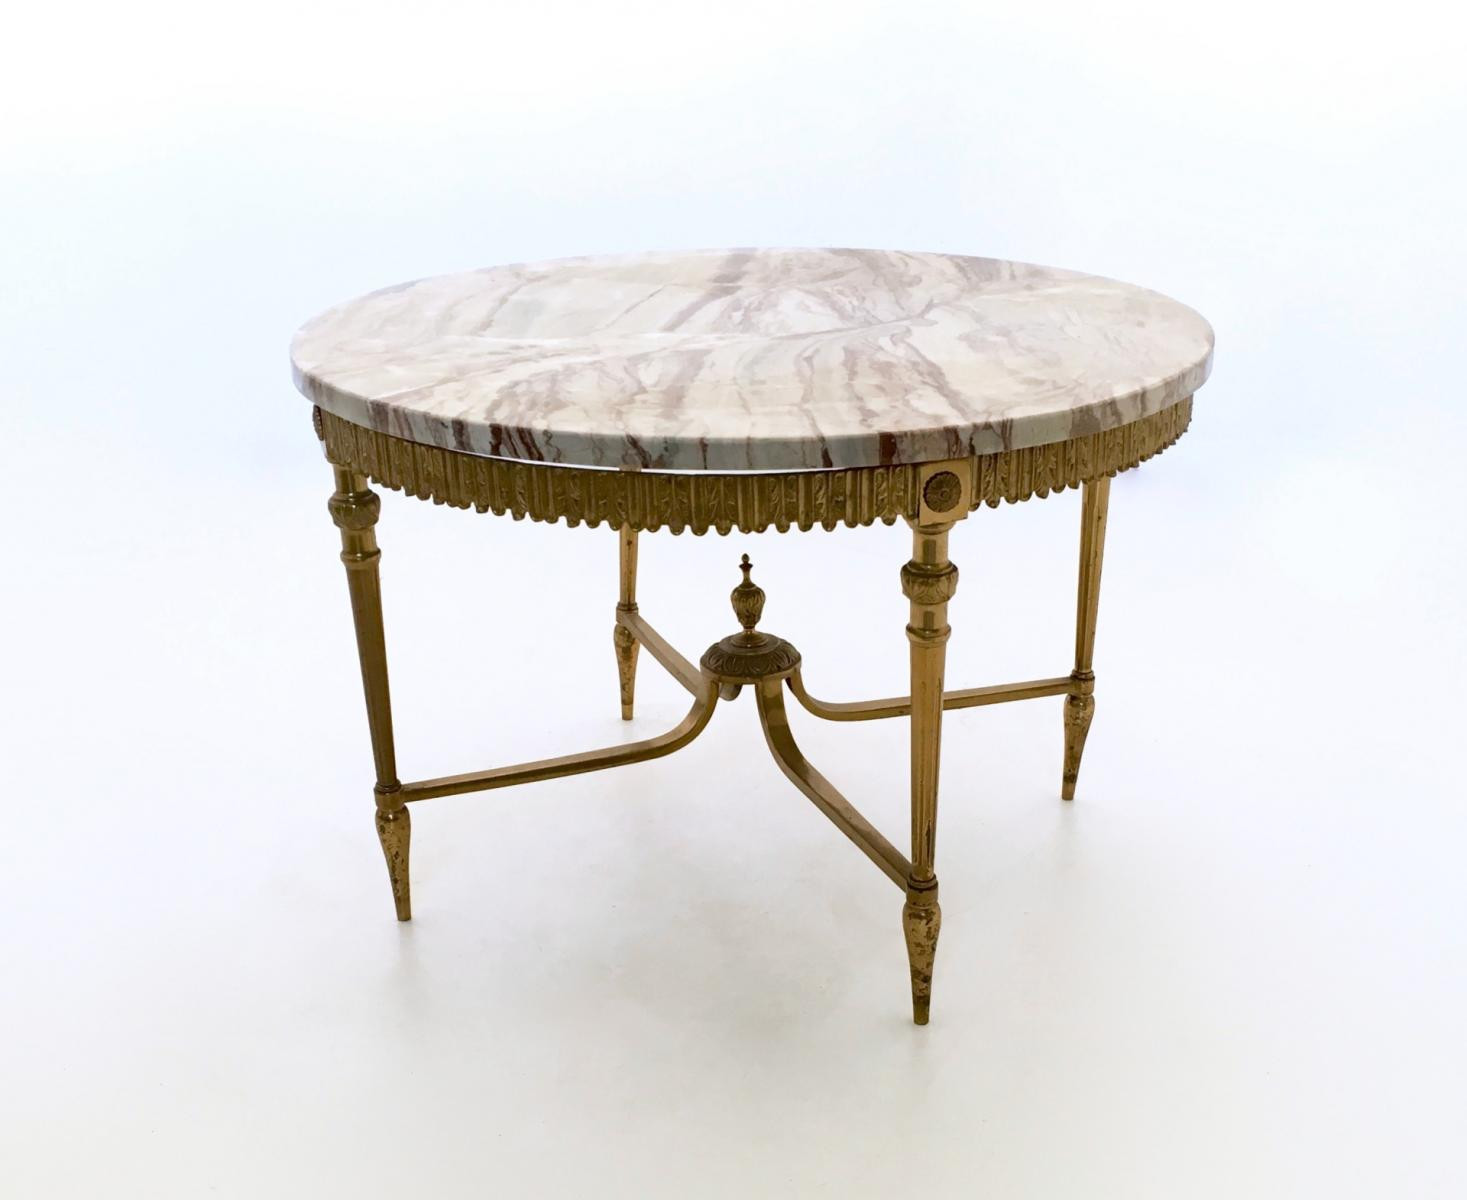 Best ideas about Coffee Table For Sale . Save or Pin Italian Marble And Brass Coffee Table S For Sale At Now.